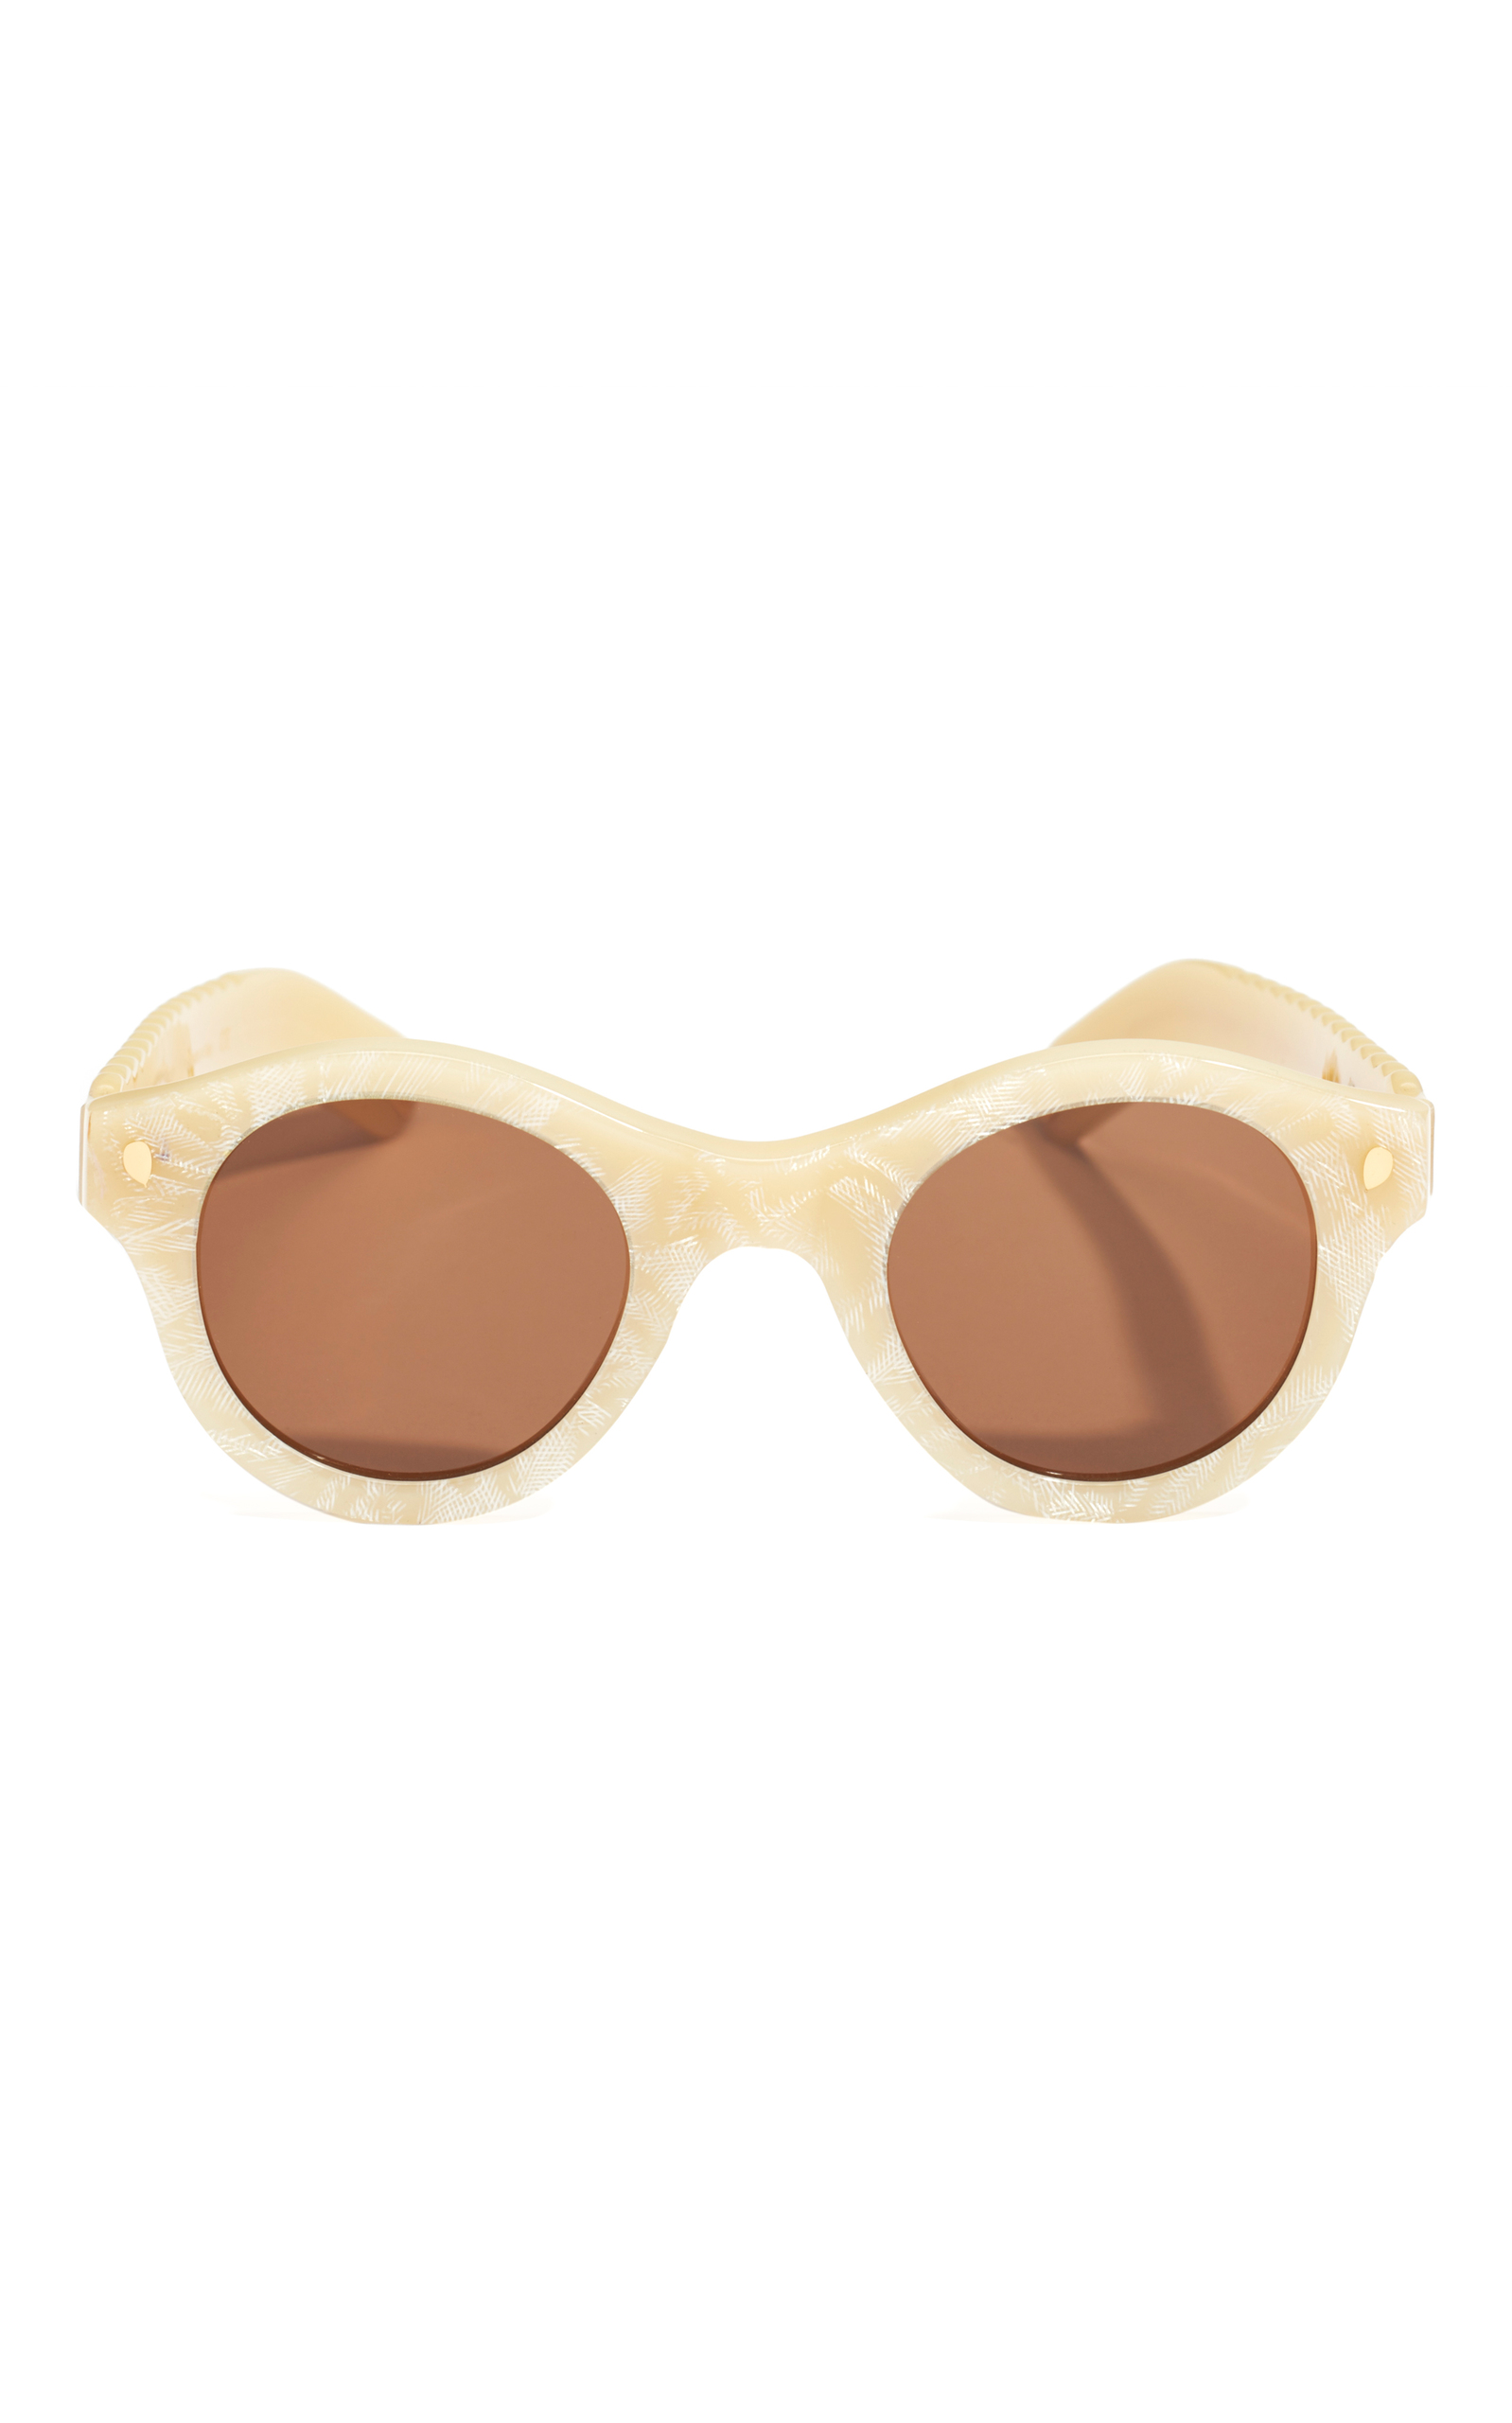 5b1d4ef527b Short   Sweet Sunglasses by Lucy Folk